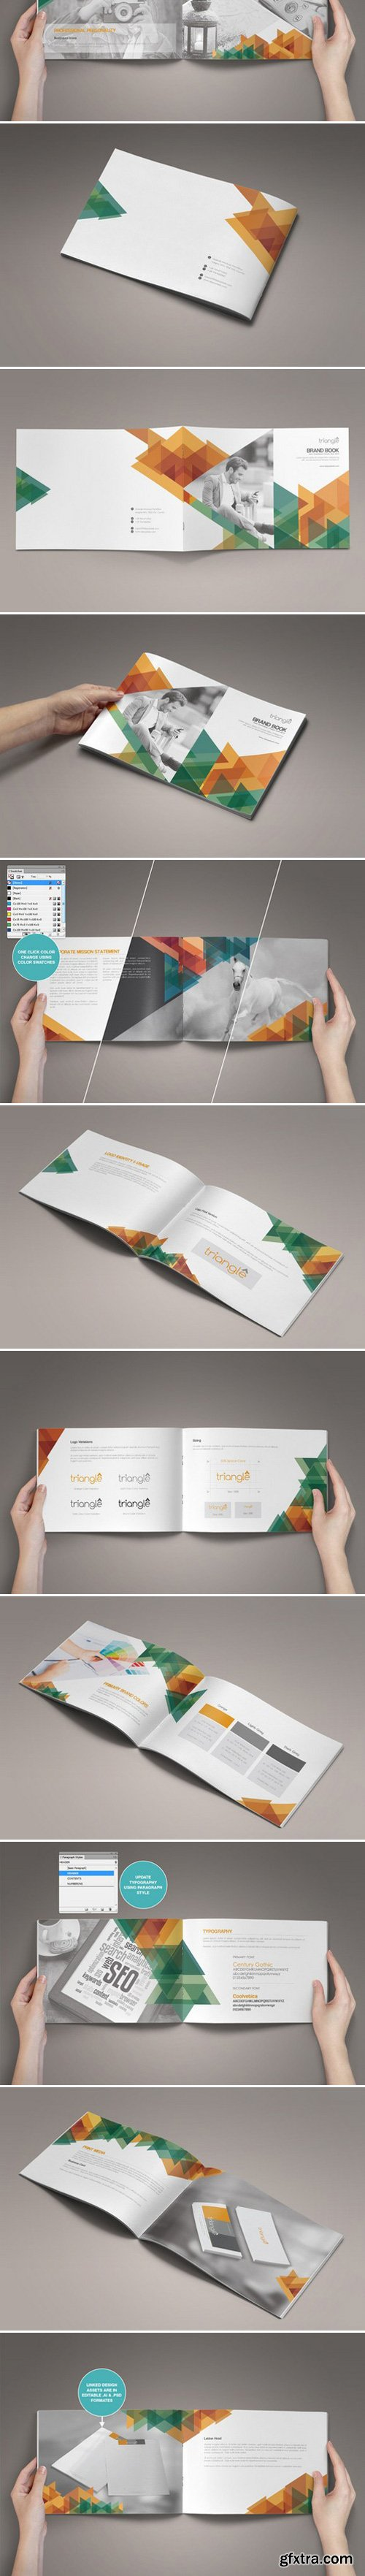 CM - The Shapes-Brand Guidelines Template 395534